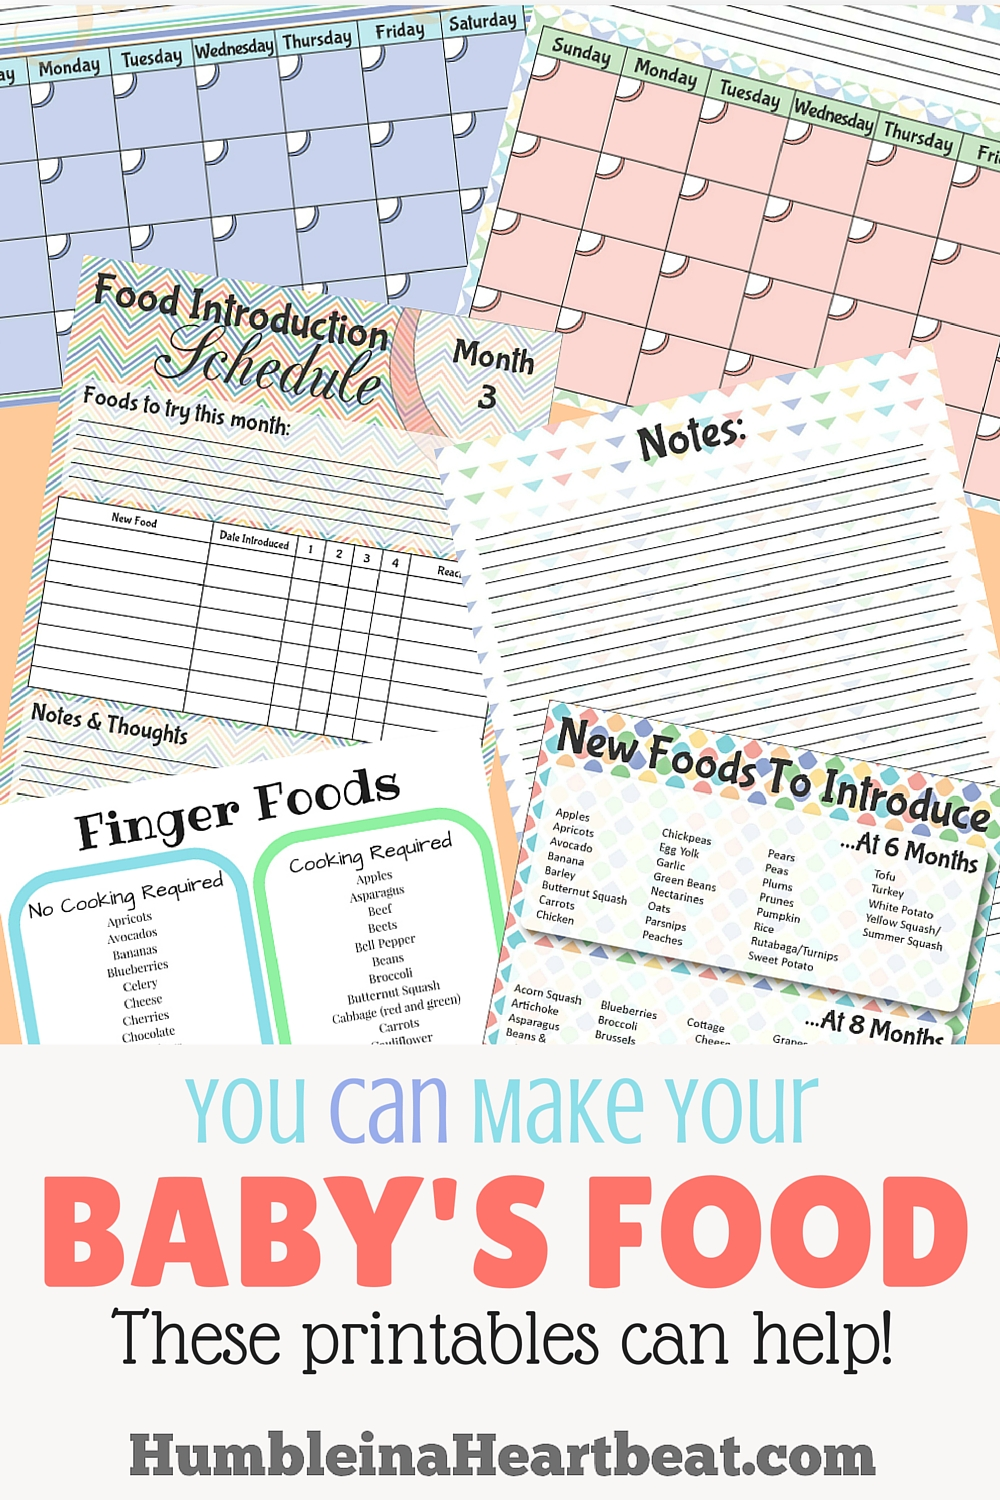 Too busy to make your baby's food at home? These printables can help! It's really not rocket science to feed your baby!